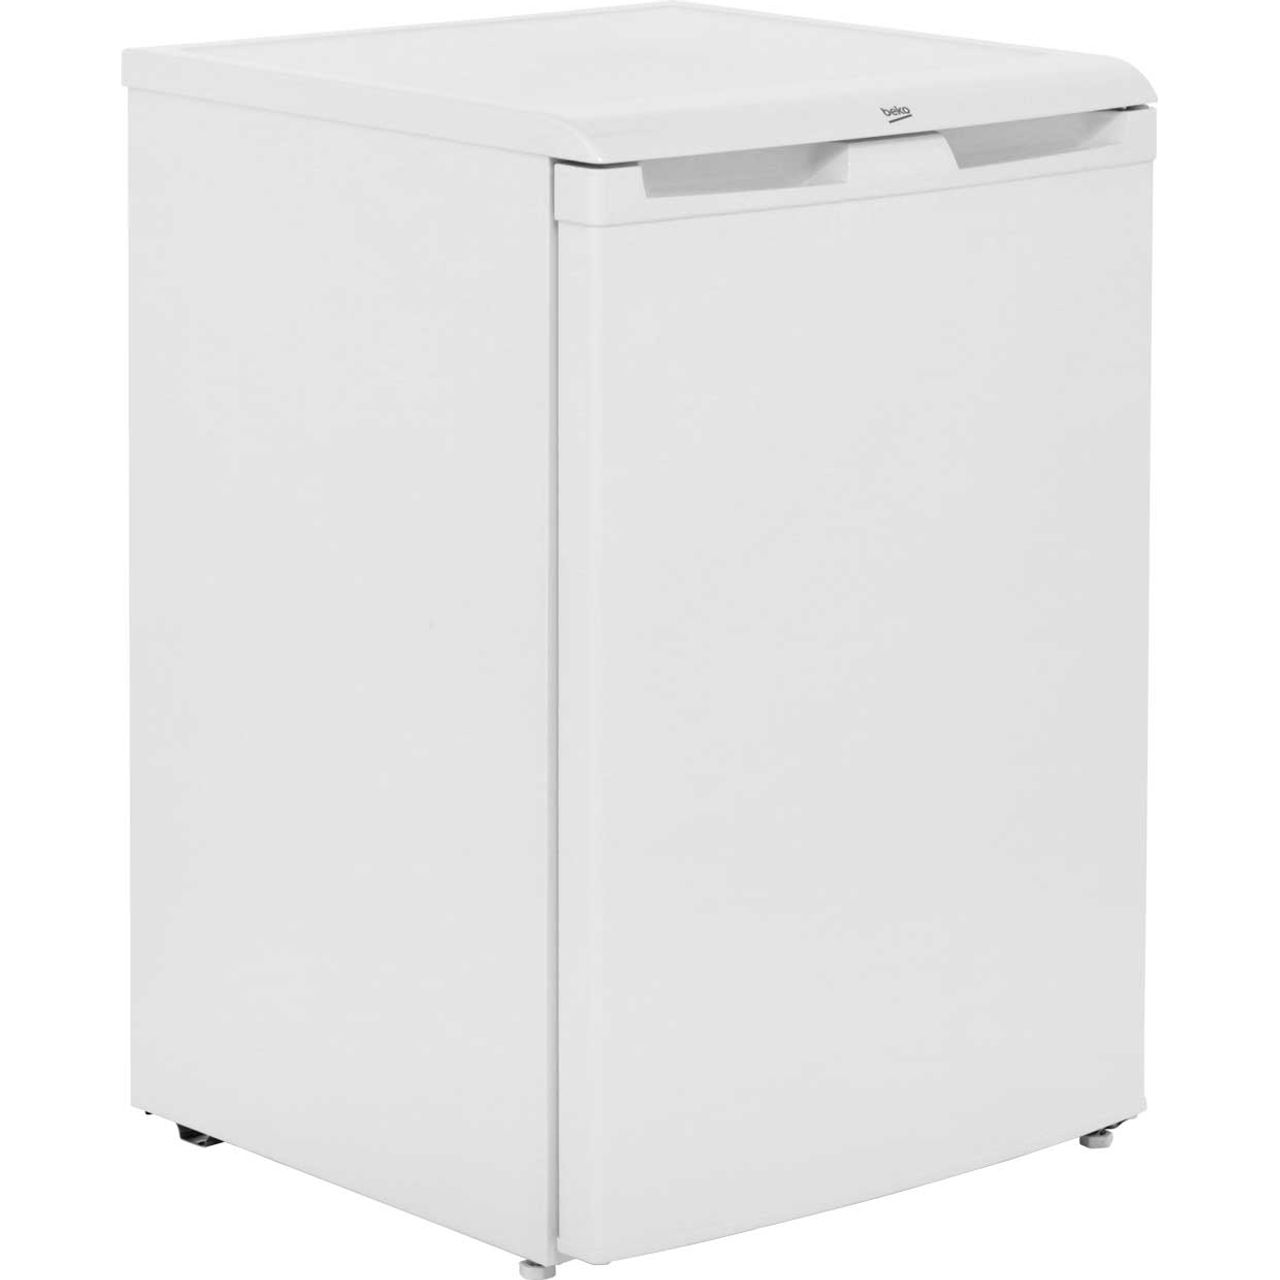 Beko UFF584APW Under Counter Freezer - White